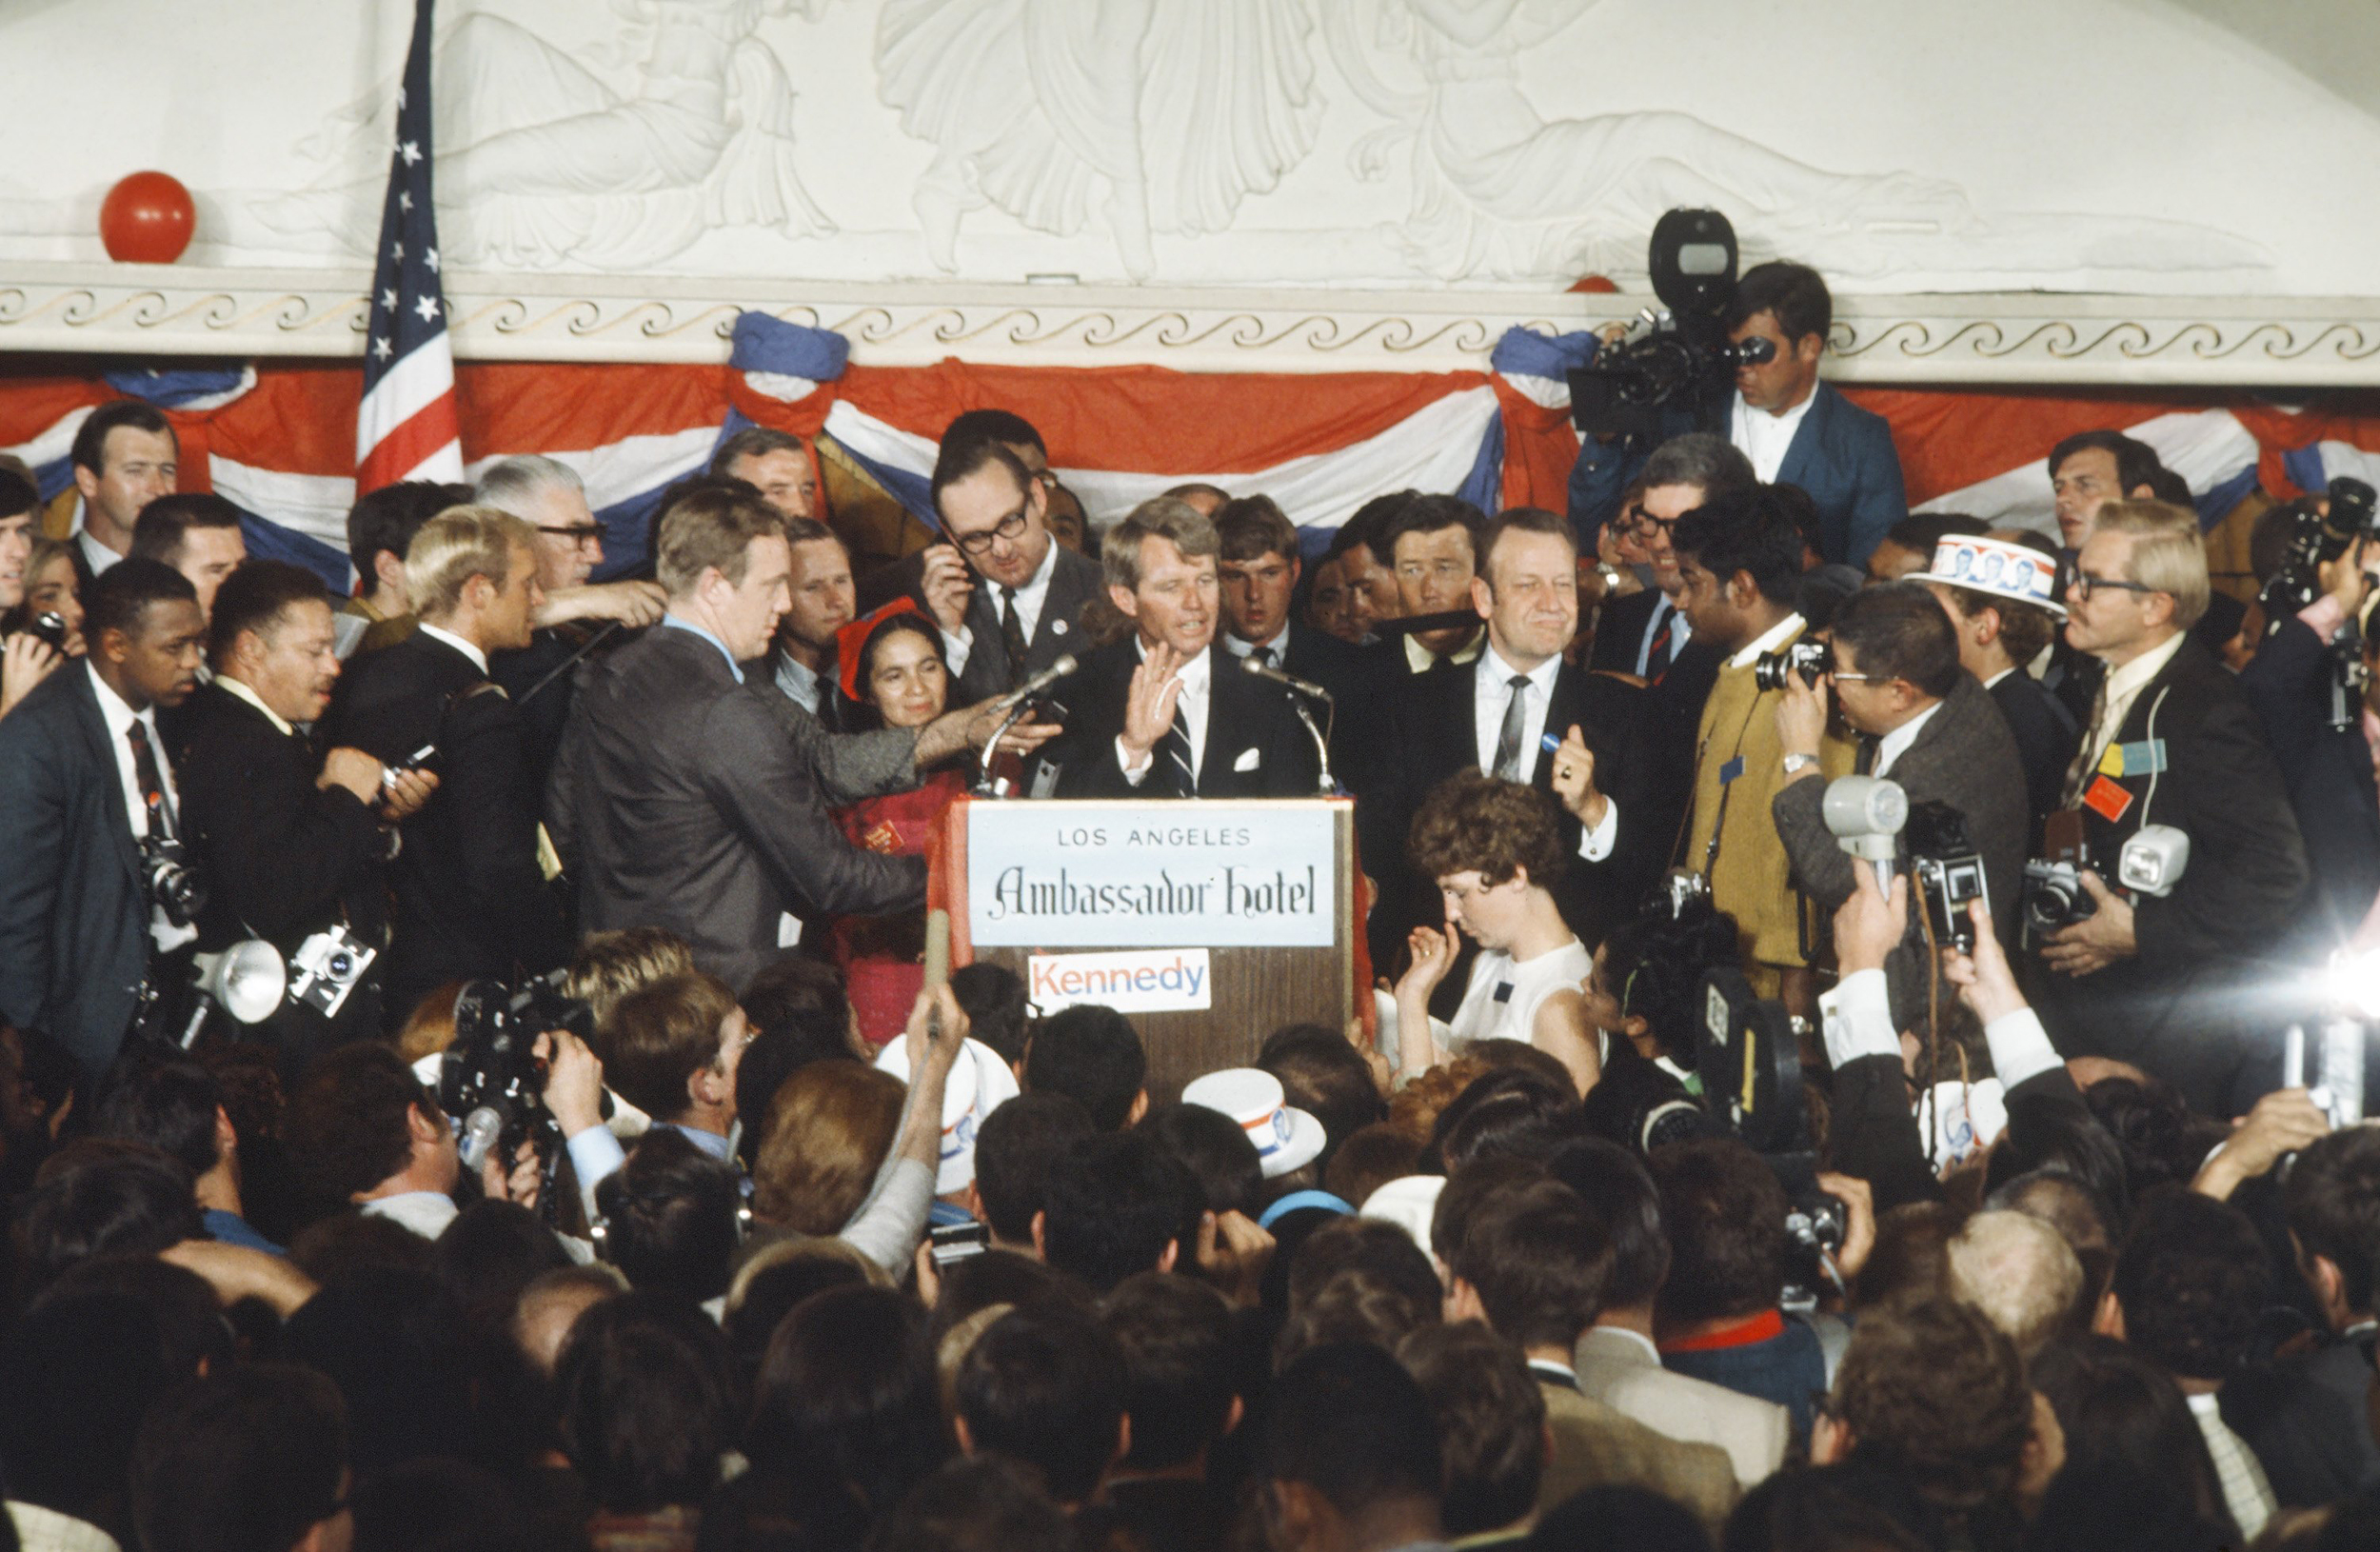 'Death of our future': How RFK's assassination set back Latino civil rights